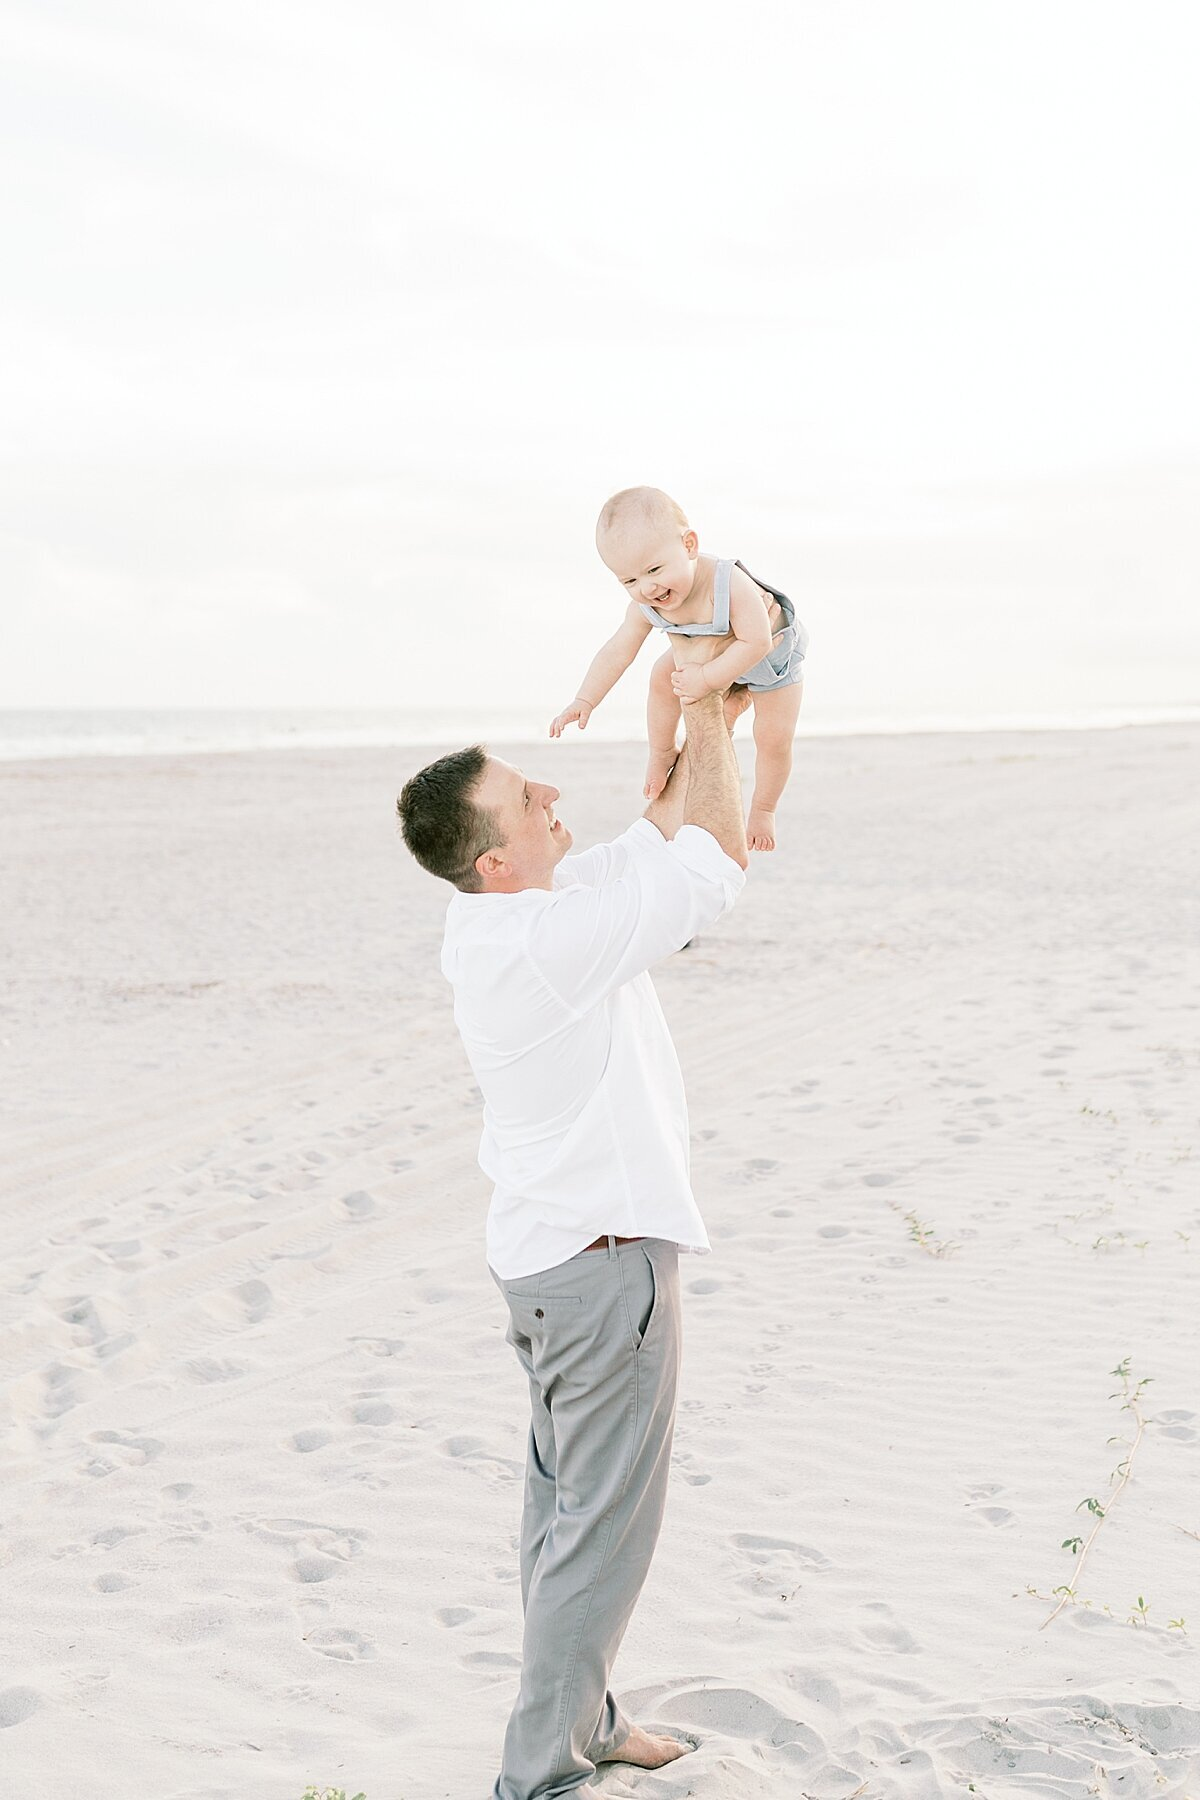 First-birthday-photoshoot-Isle-of-Palms-caitlyn-motycka-photography_0005